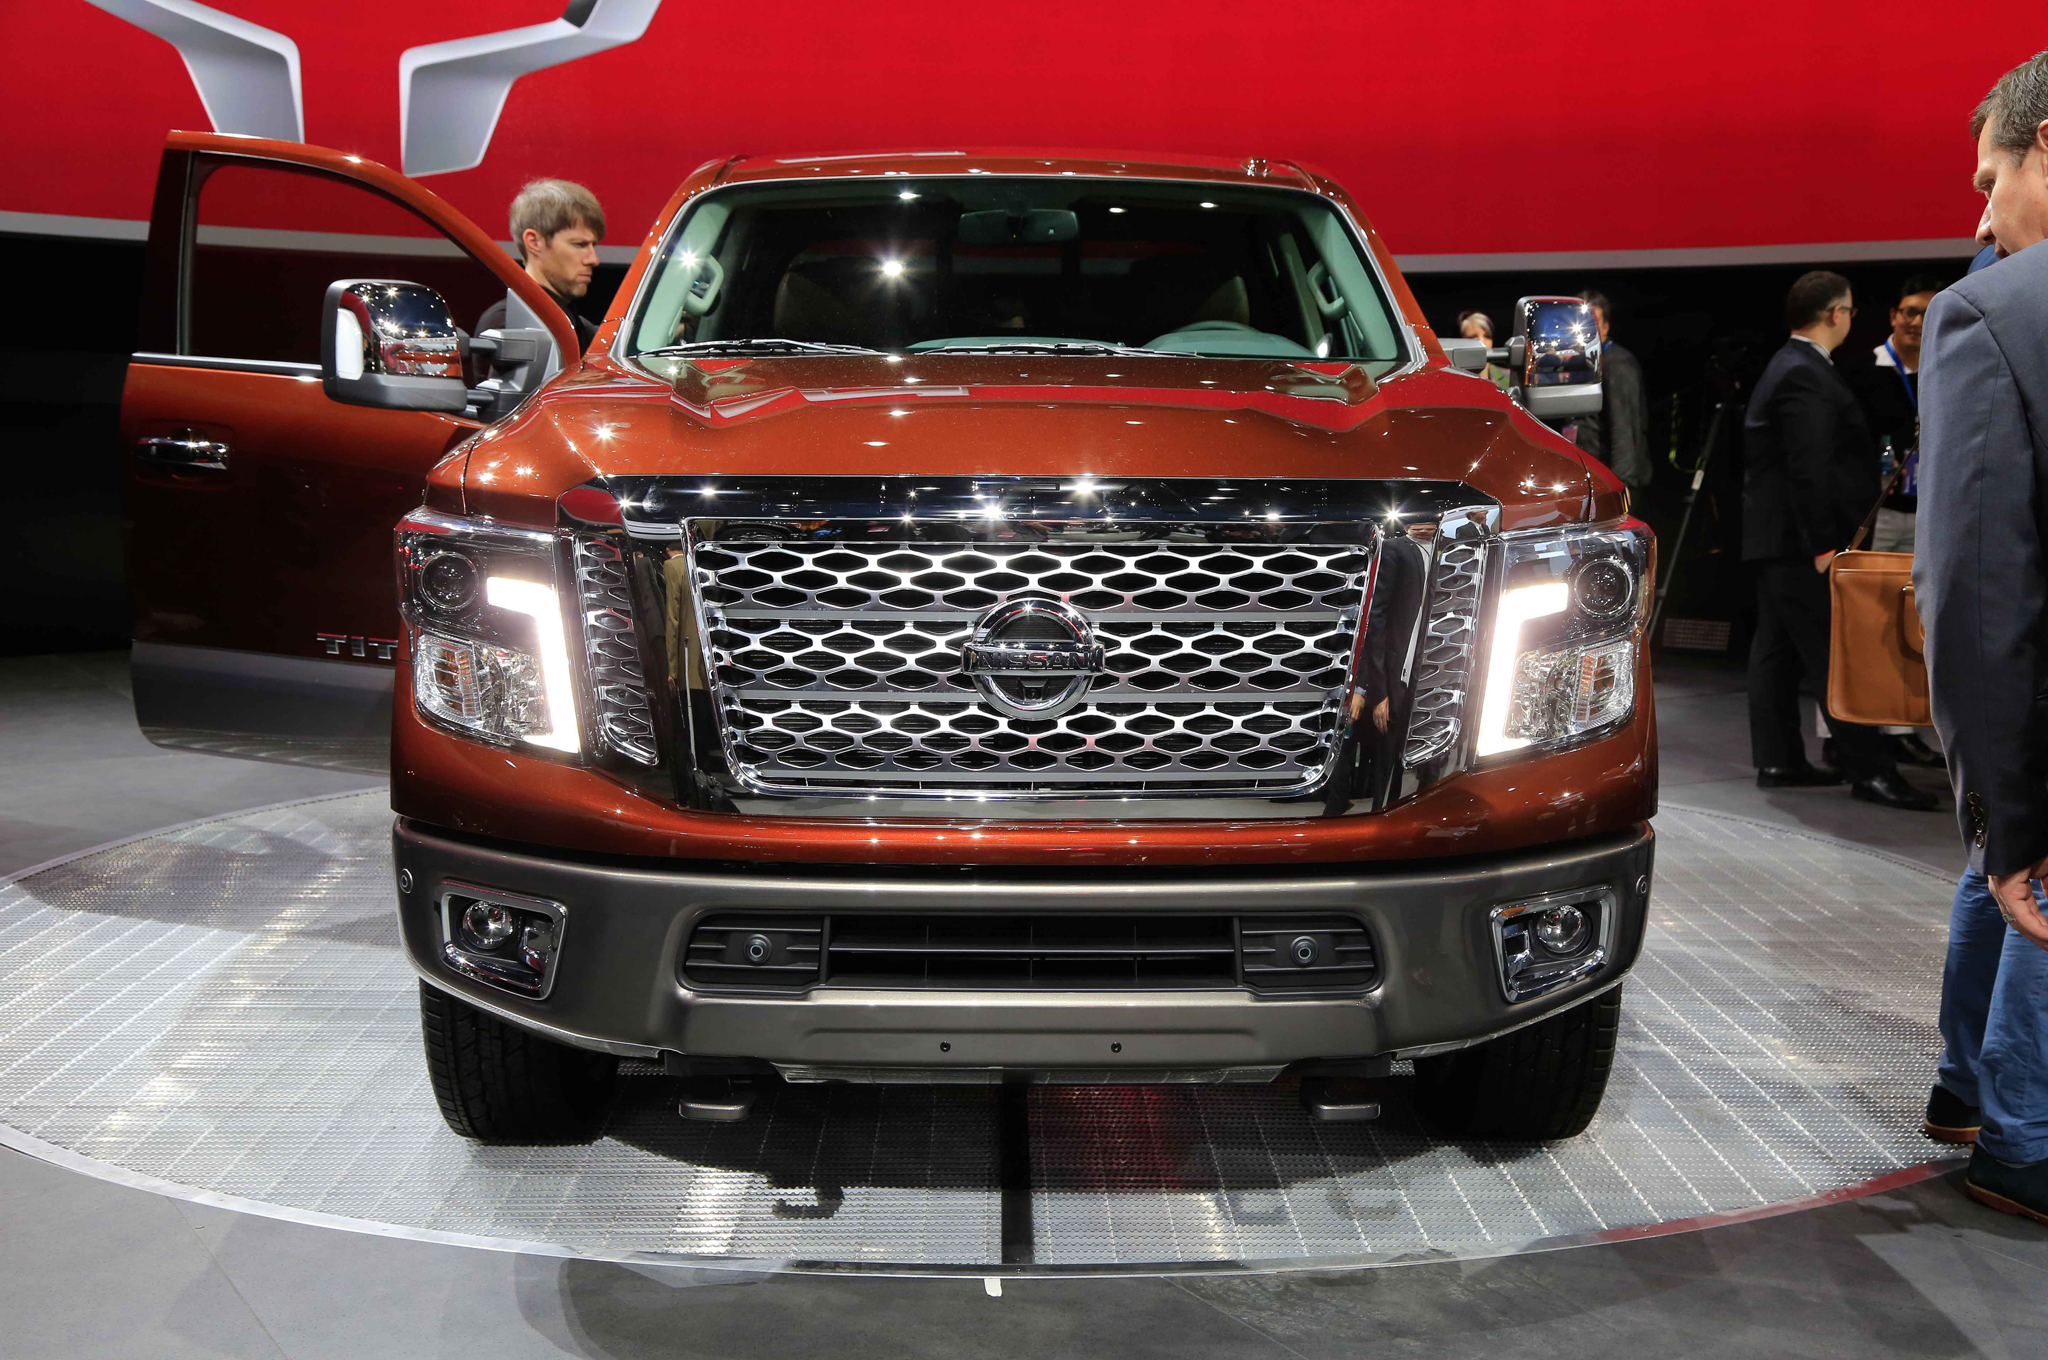 2016 Nissan Titan Front Grille Photo (View 5 of 10)